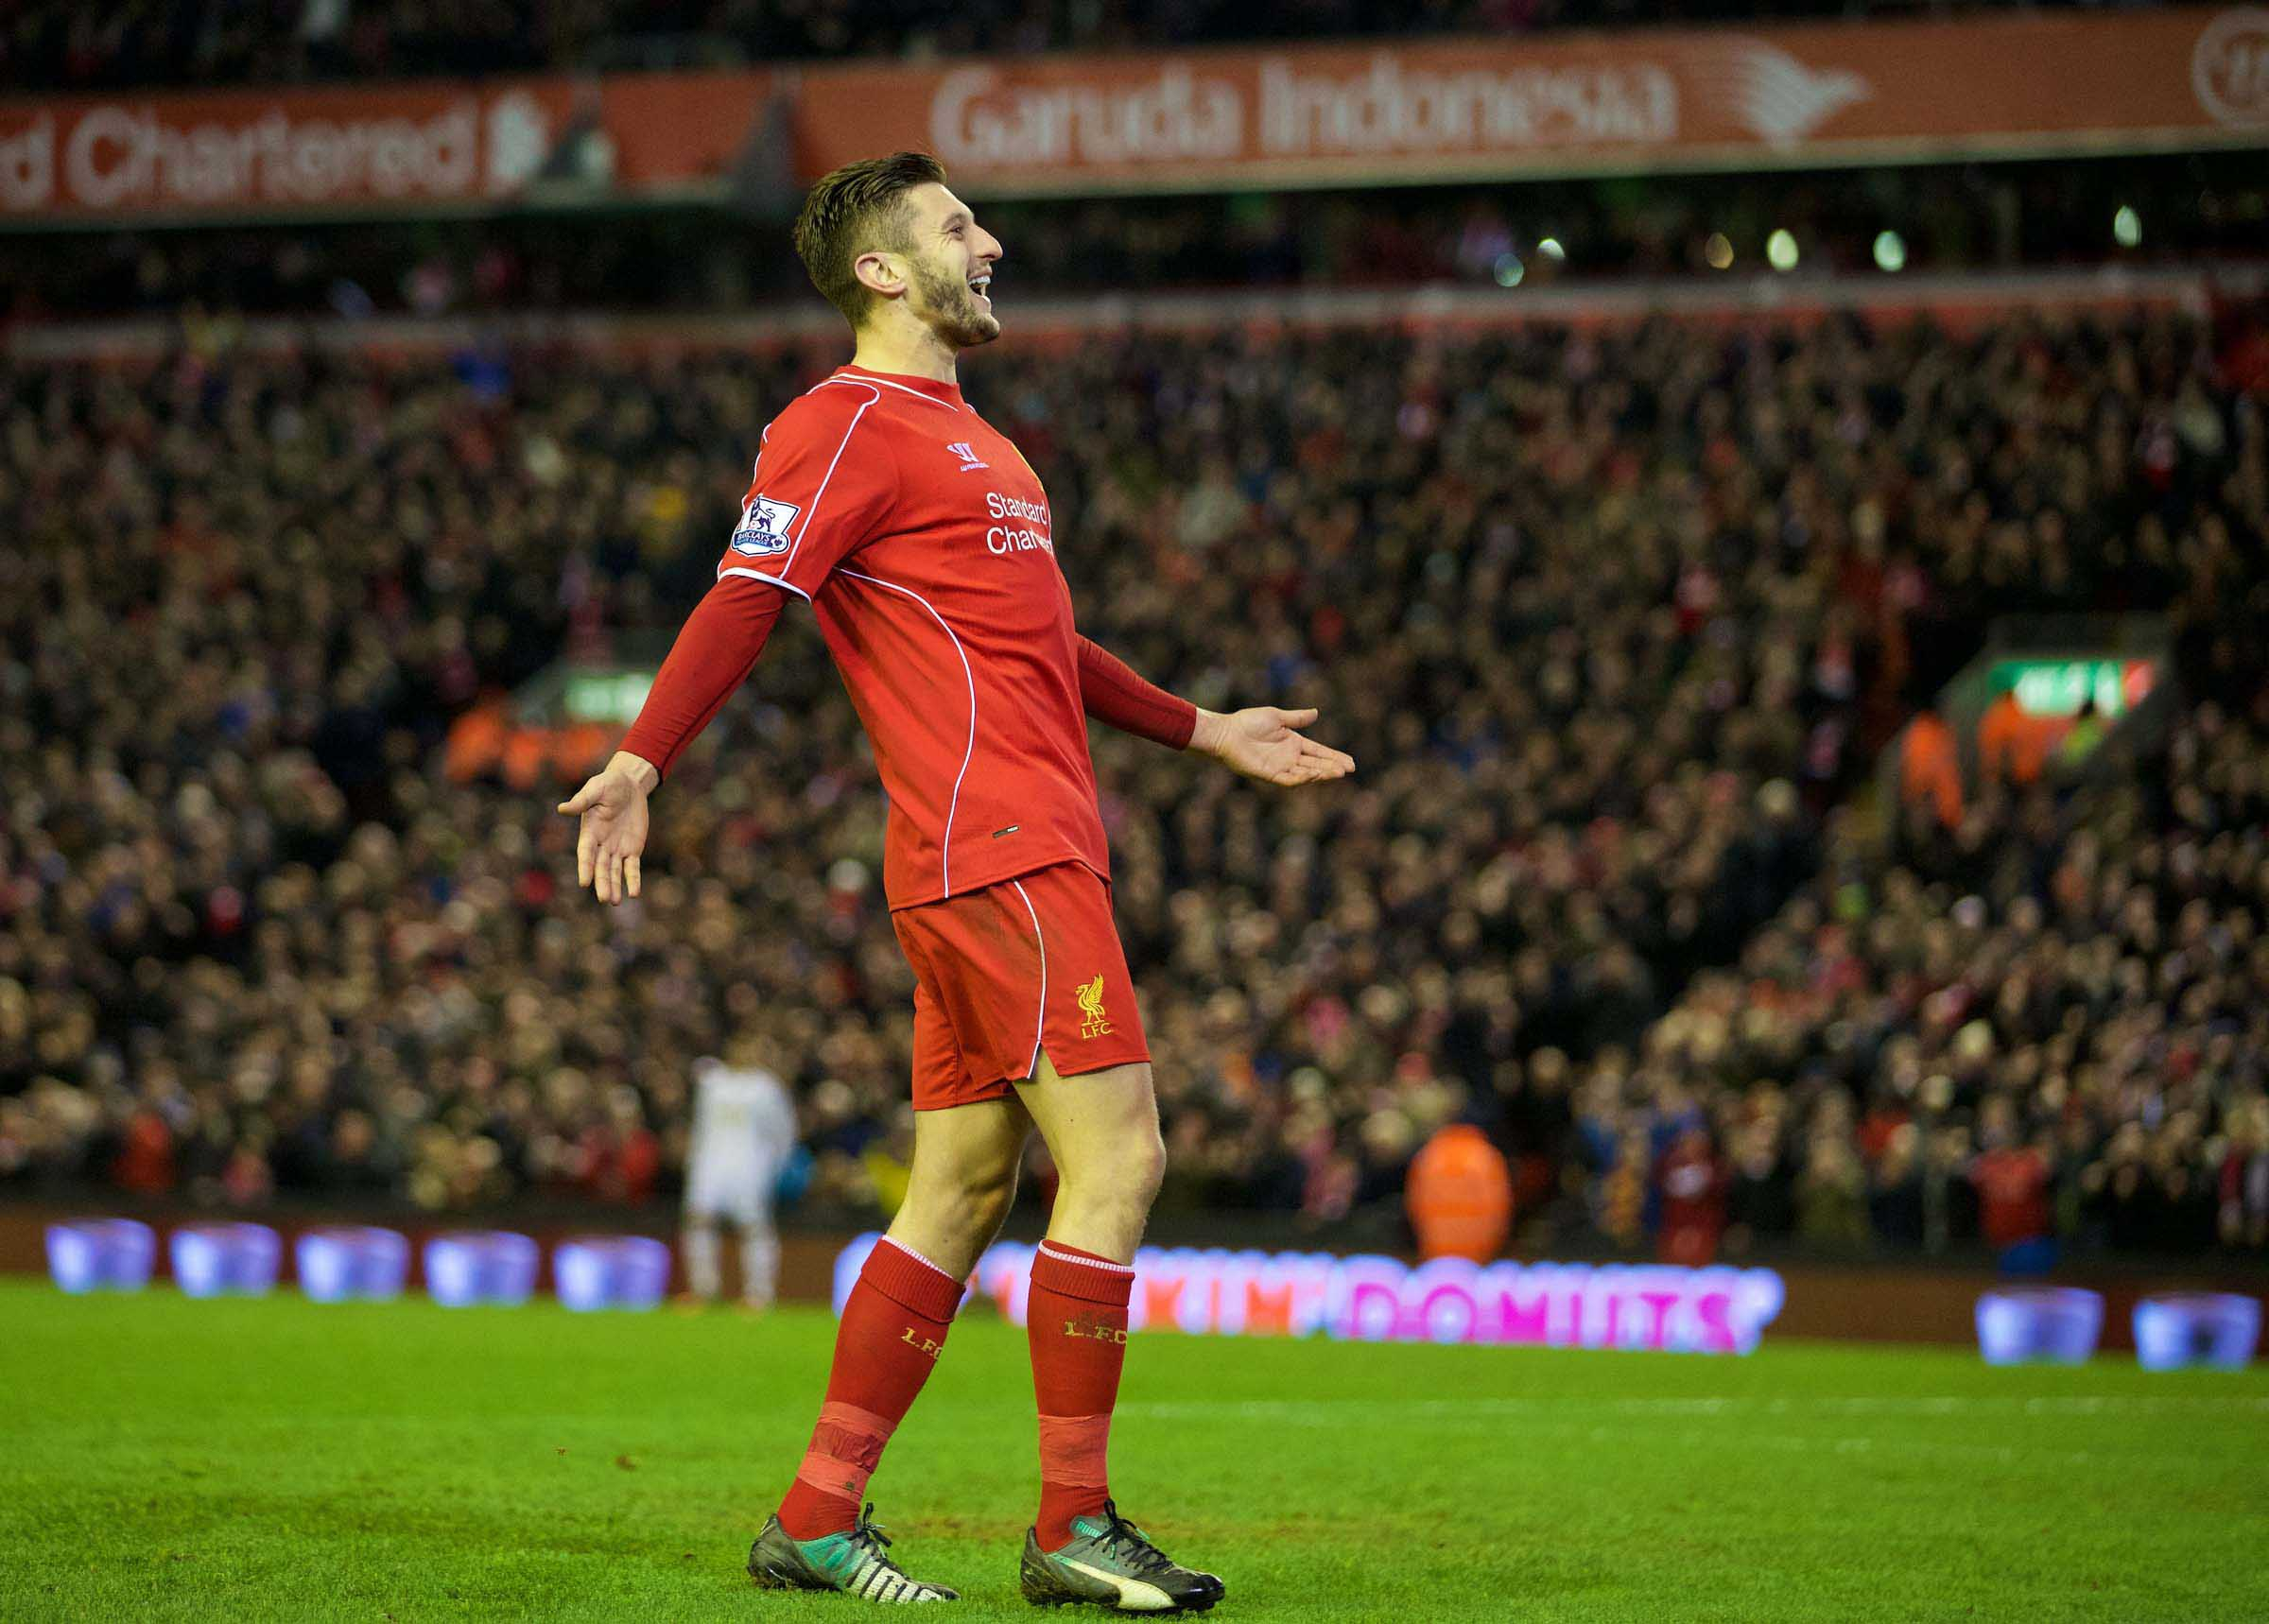 LIVERPOOL FOUR (4) SWANSEA ONE (1)